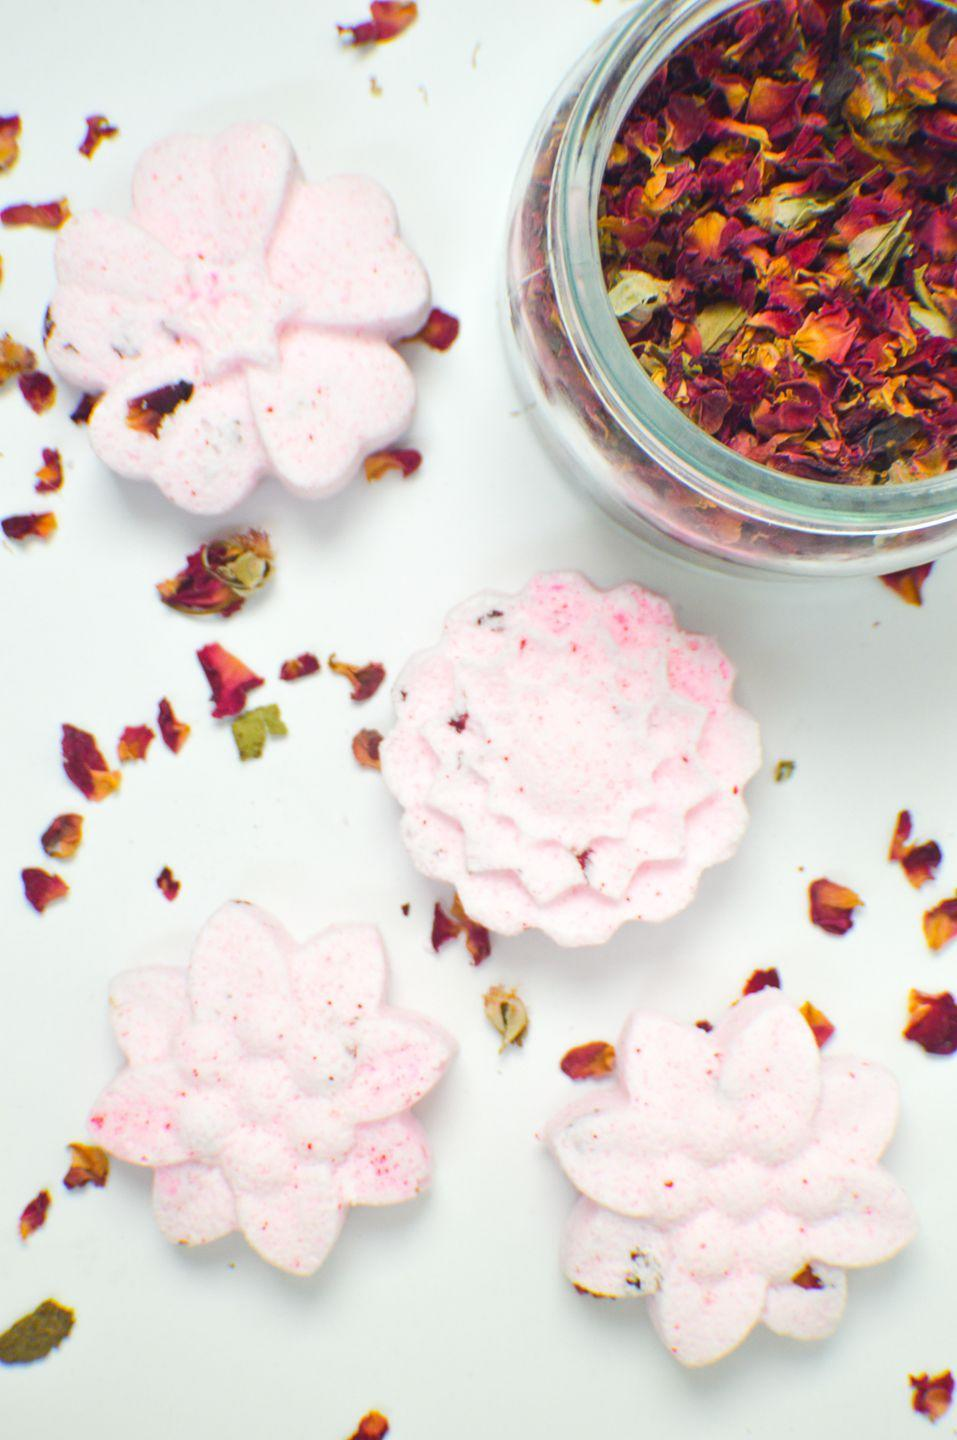 "<p>Sure, bath bombs that smell like roses are divine. But rose-infused bath bombs that look like fresh blooms are even better. </p><p><em><a href=""https://www.clubcrafted.com/2016/08/25/diy-floral-bath-bombs/"" rel=""nofollow noopener"" target=""_blank"" data-ylk=""slk:Get the tutorial at Club Crafted »"" class=""link rapid-noclick-resp"">Get the tutorial at Club Crafted »</a></em> </p>"